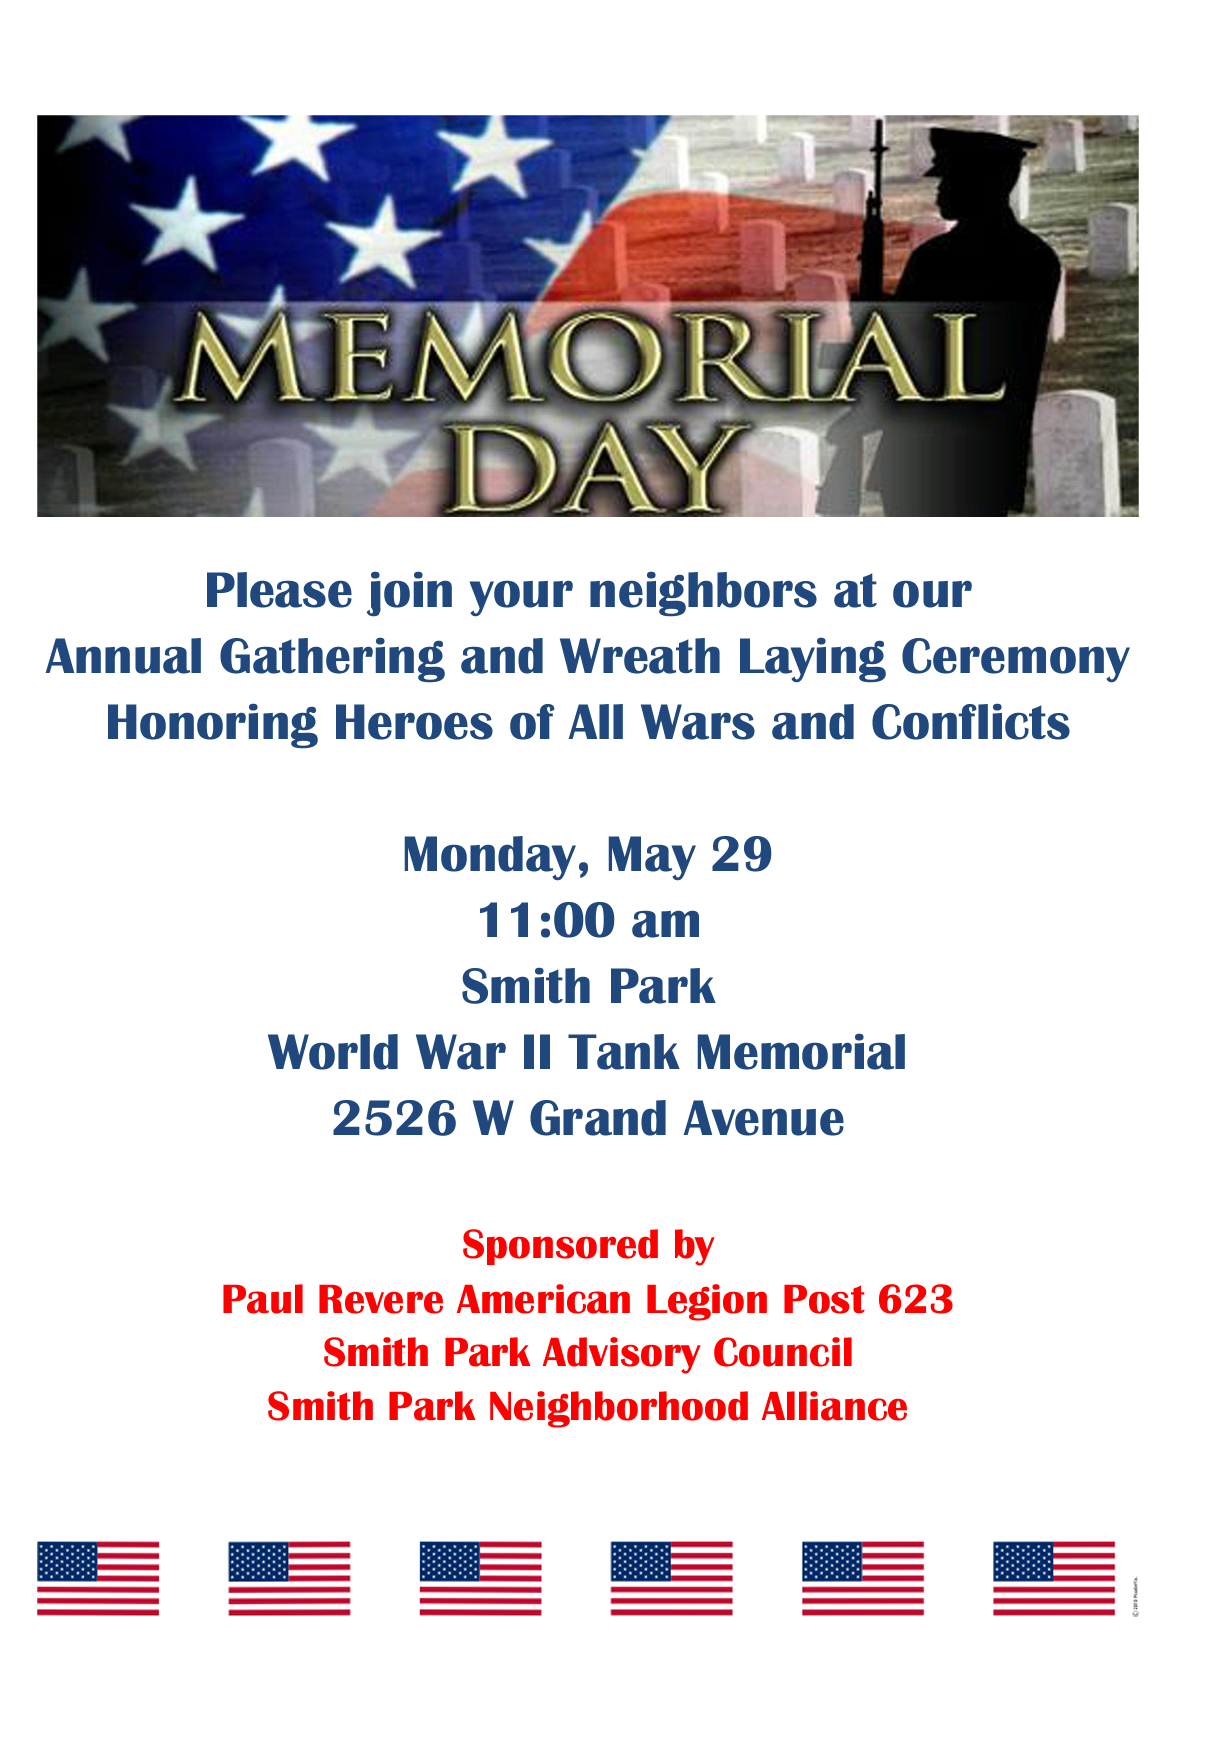 Smith Park Advisory Council in conjunction with the Smith Park Neighborhood Alliance and Paul Revere - Post 623 will hold a Memorial Day event at Smith Park